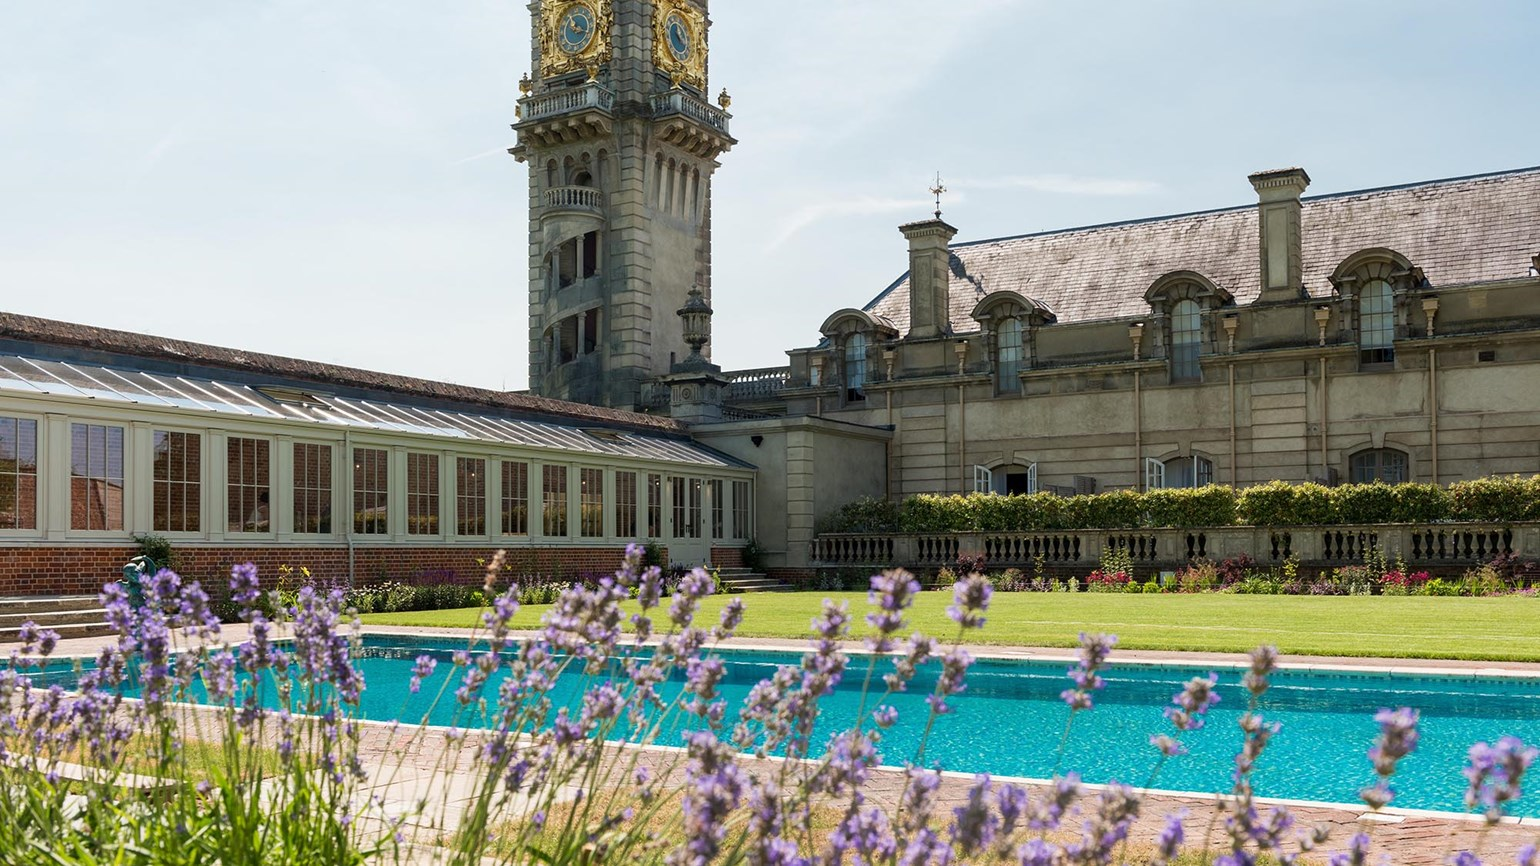 Refit Spa at Cliveden House opens